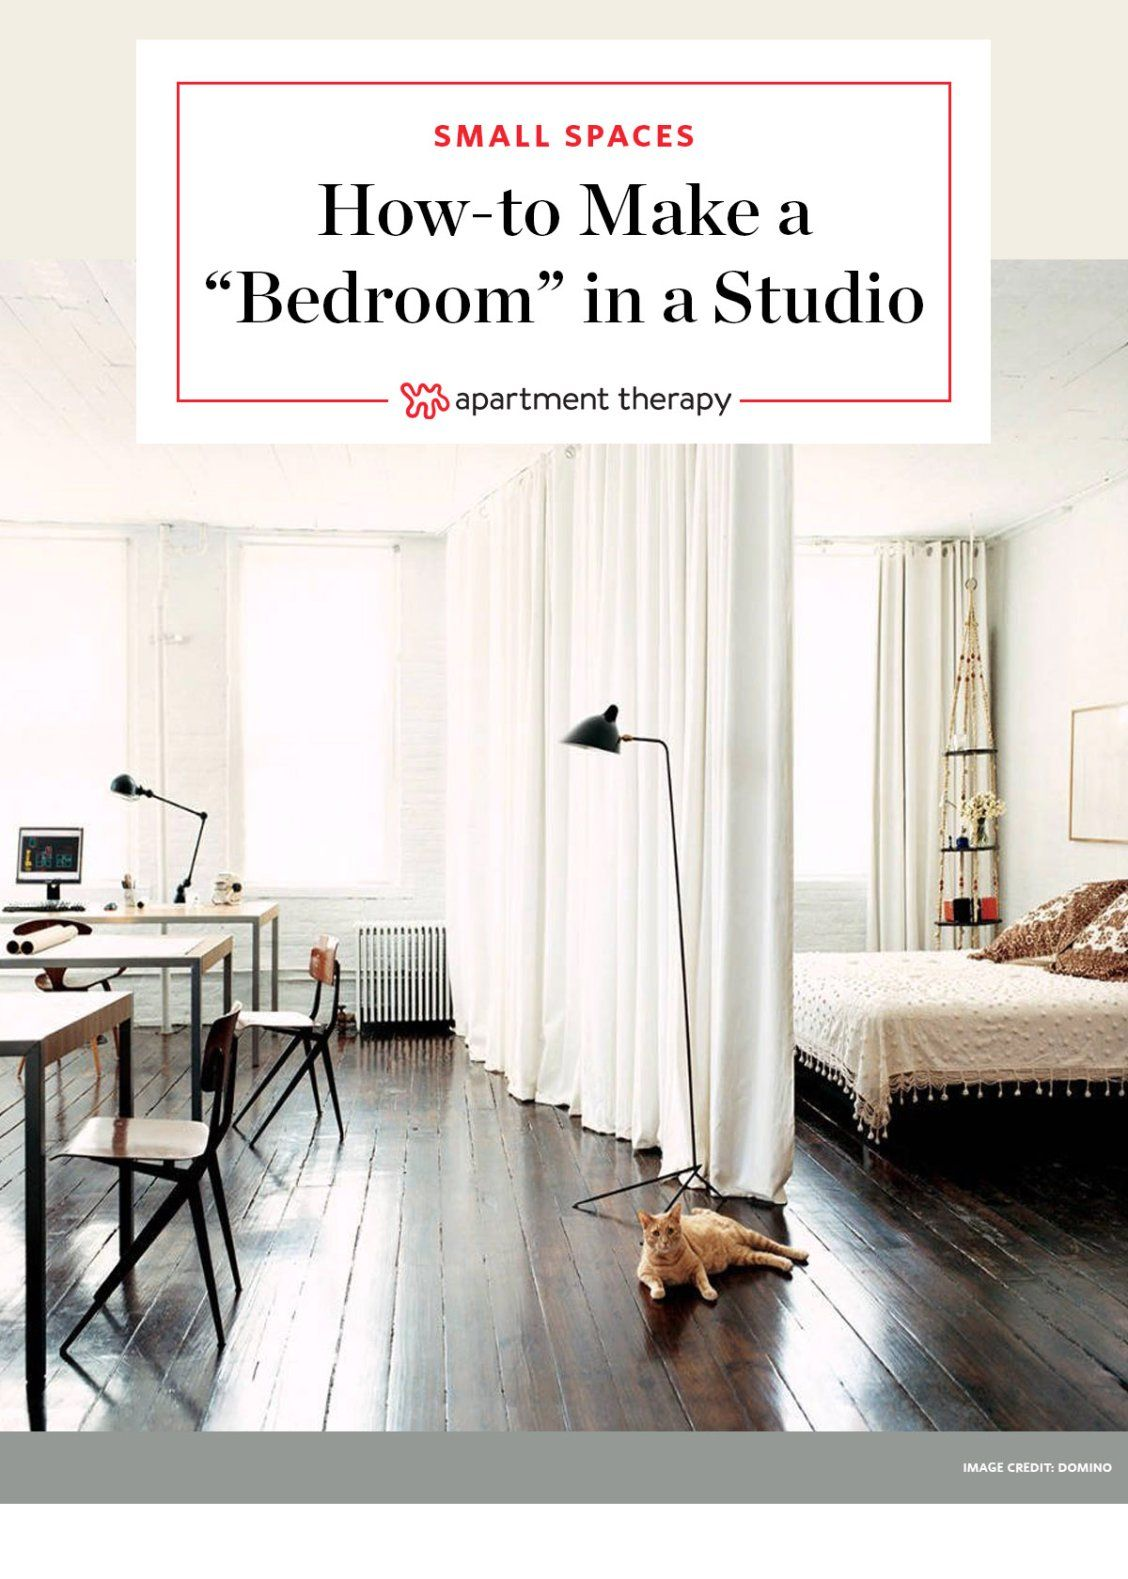 12 Ways To Create A Bedroom In Studio Apartment You Need Little Privacy For When Houseguests Stay Or Just Want Separation